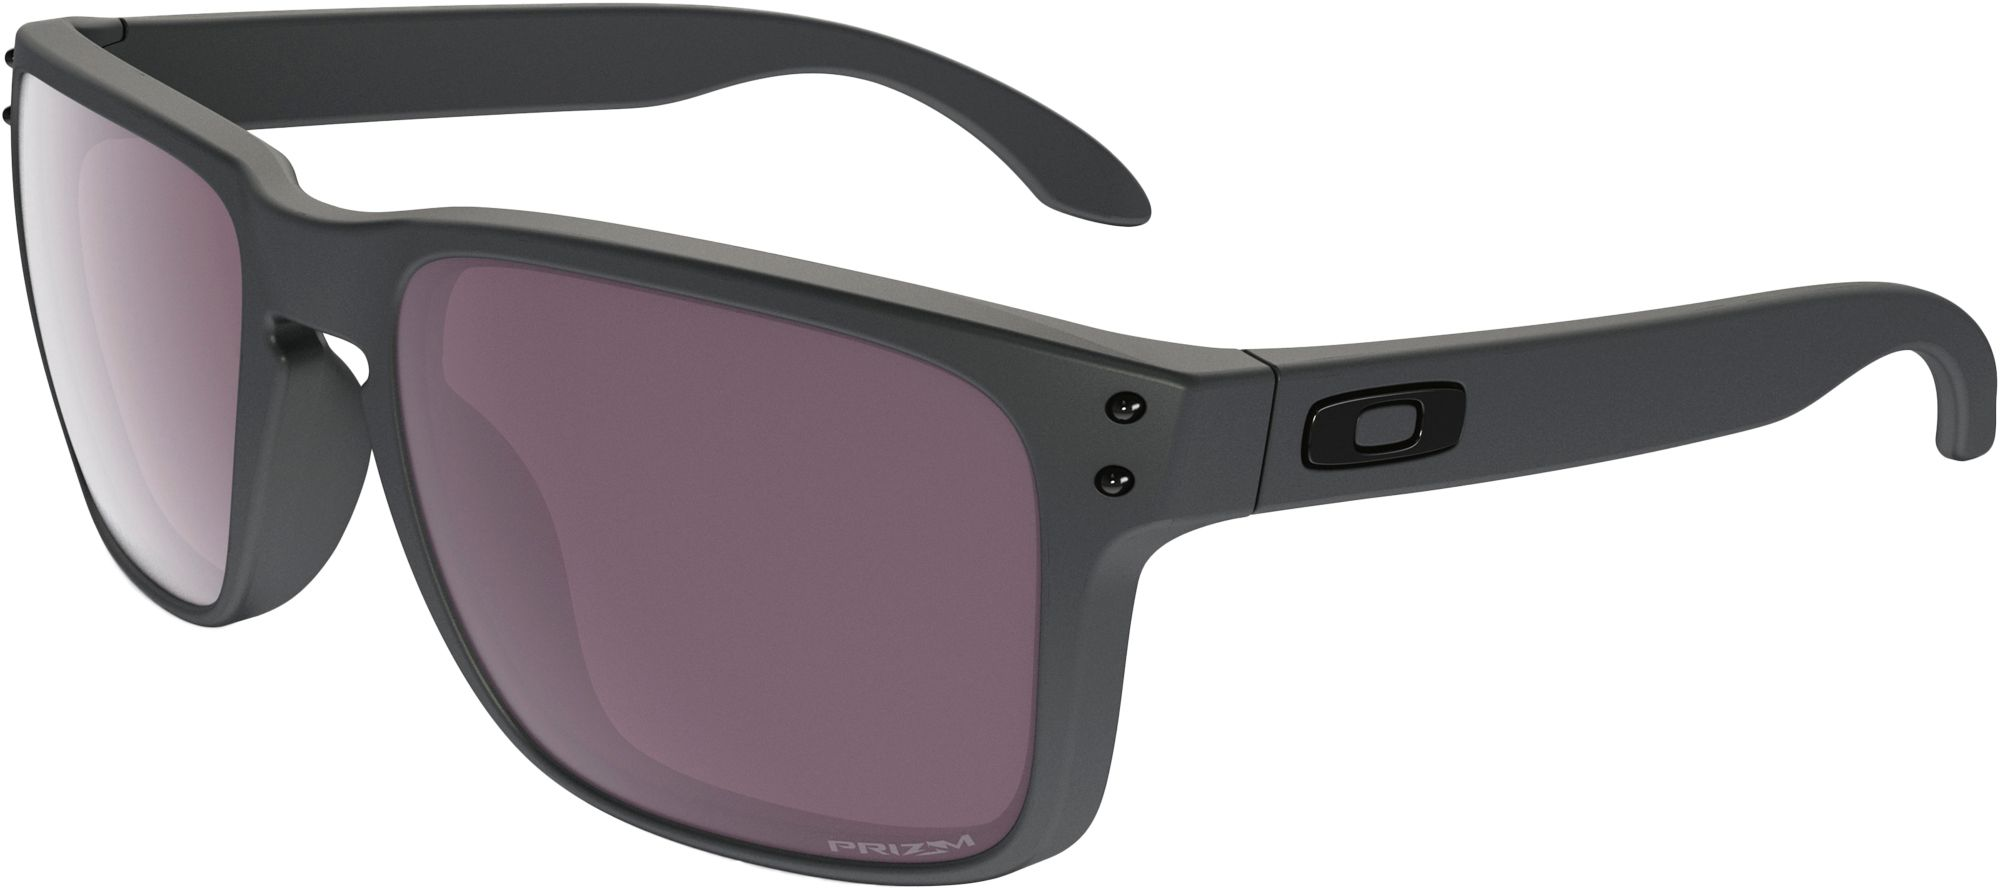 oakley prizm daily polarized sunglasses